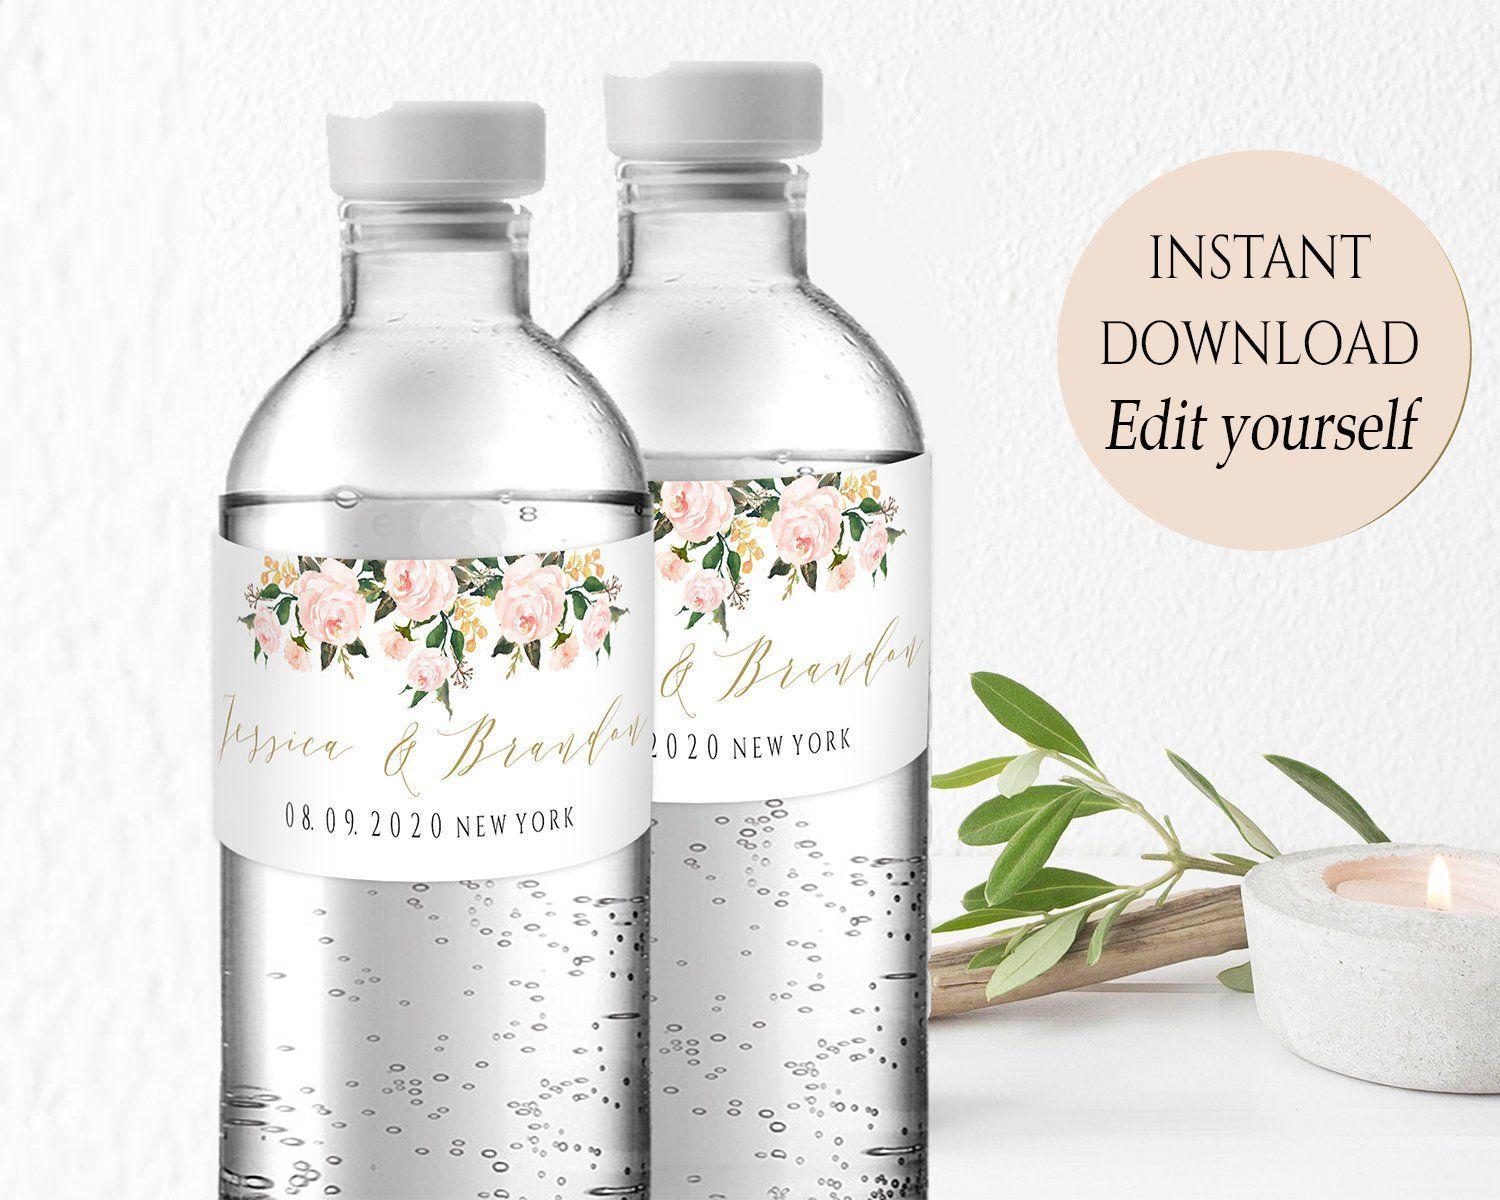 004 Incredible Free Wedding Template For Word Water Bottle Label Image  LabelsFull